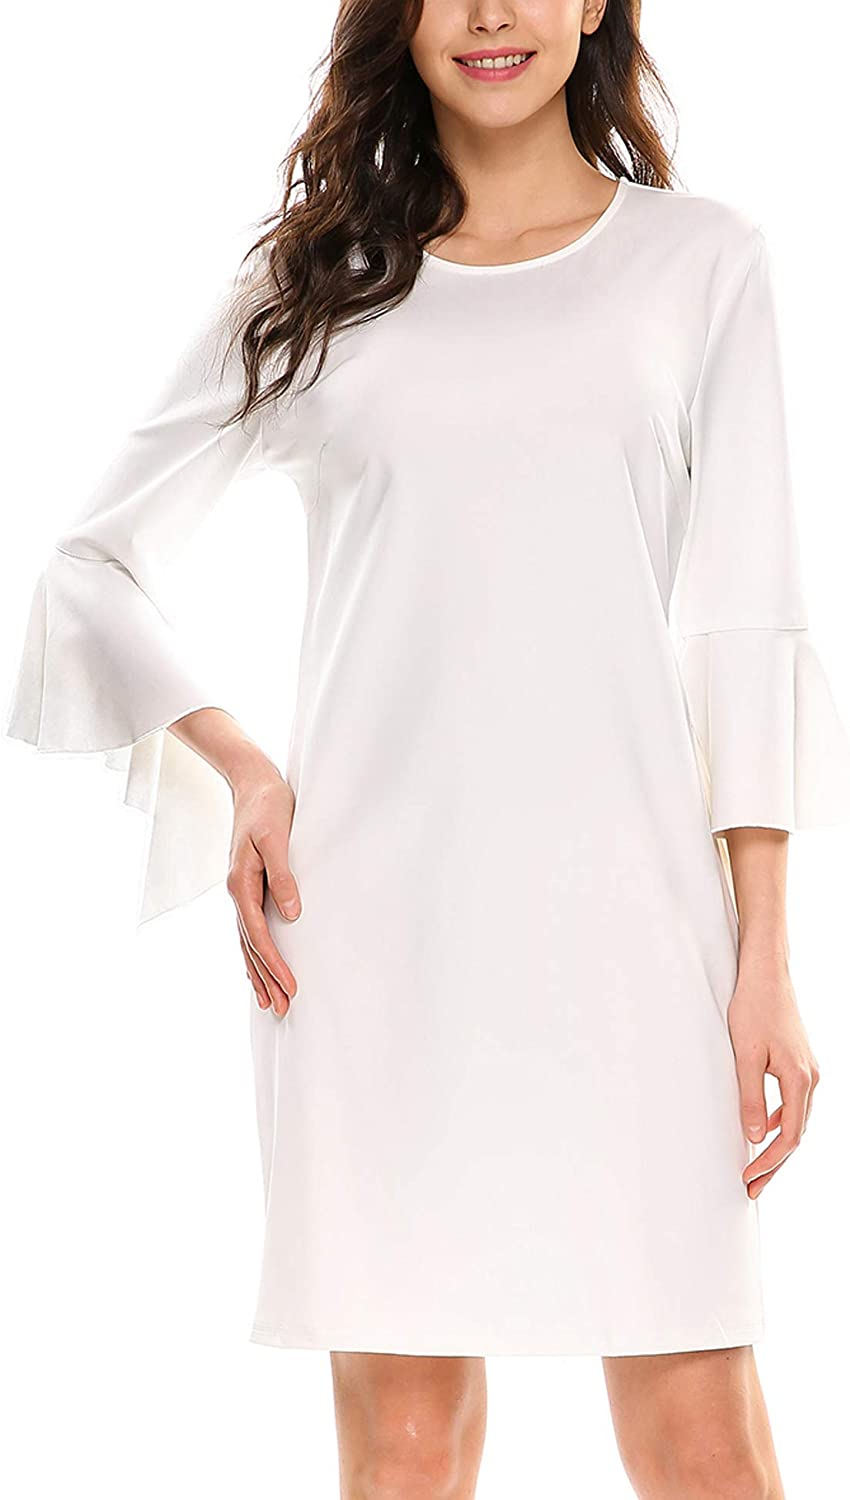 ELESOL Women's Ruffle 3 4 Sleeve Round Neck Causal Solid Shift Dress